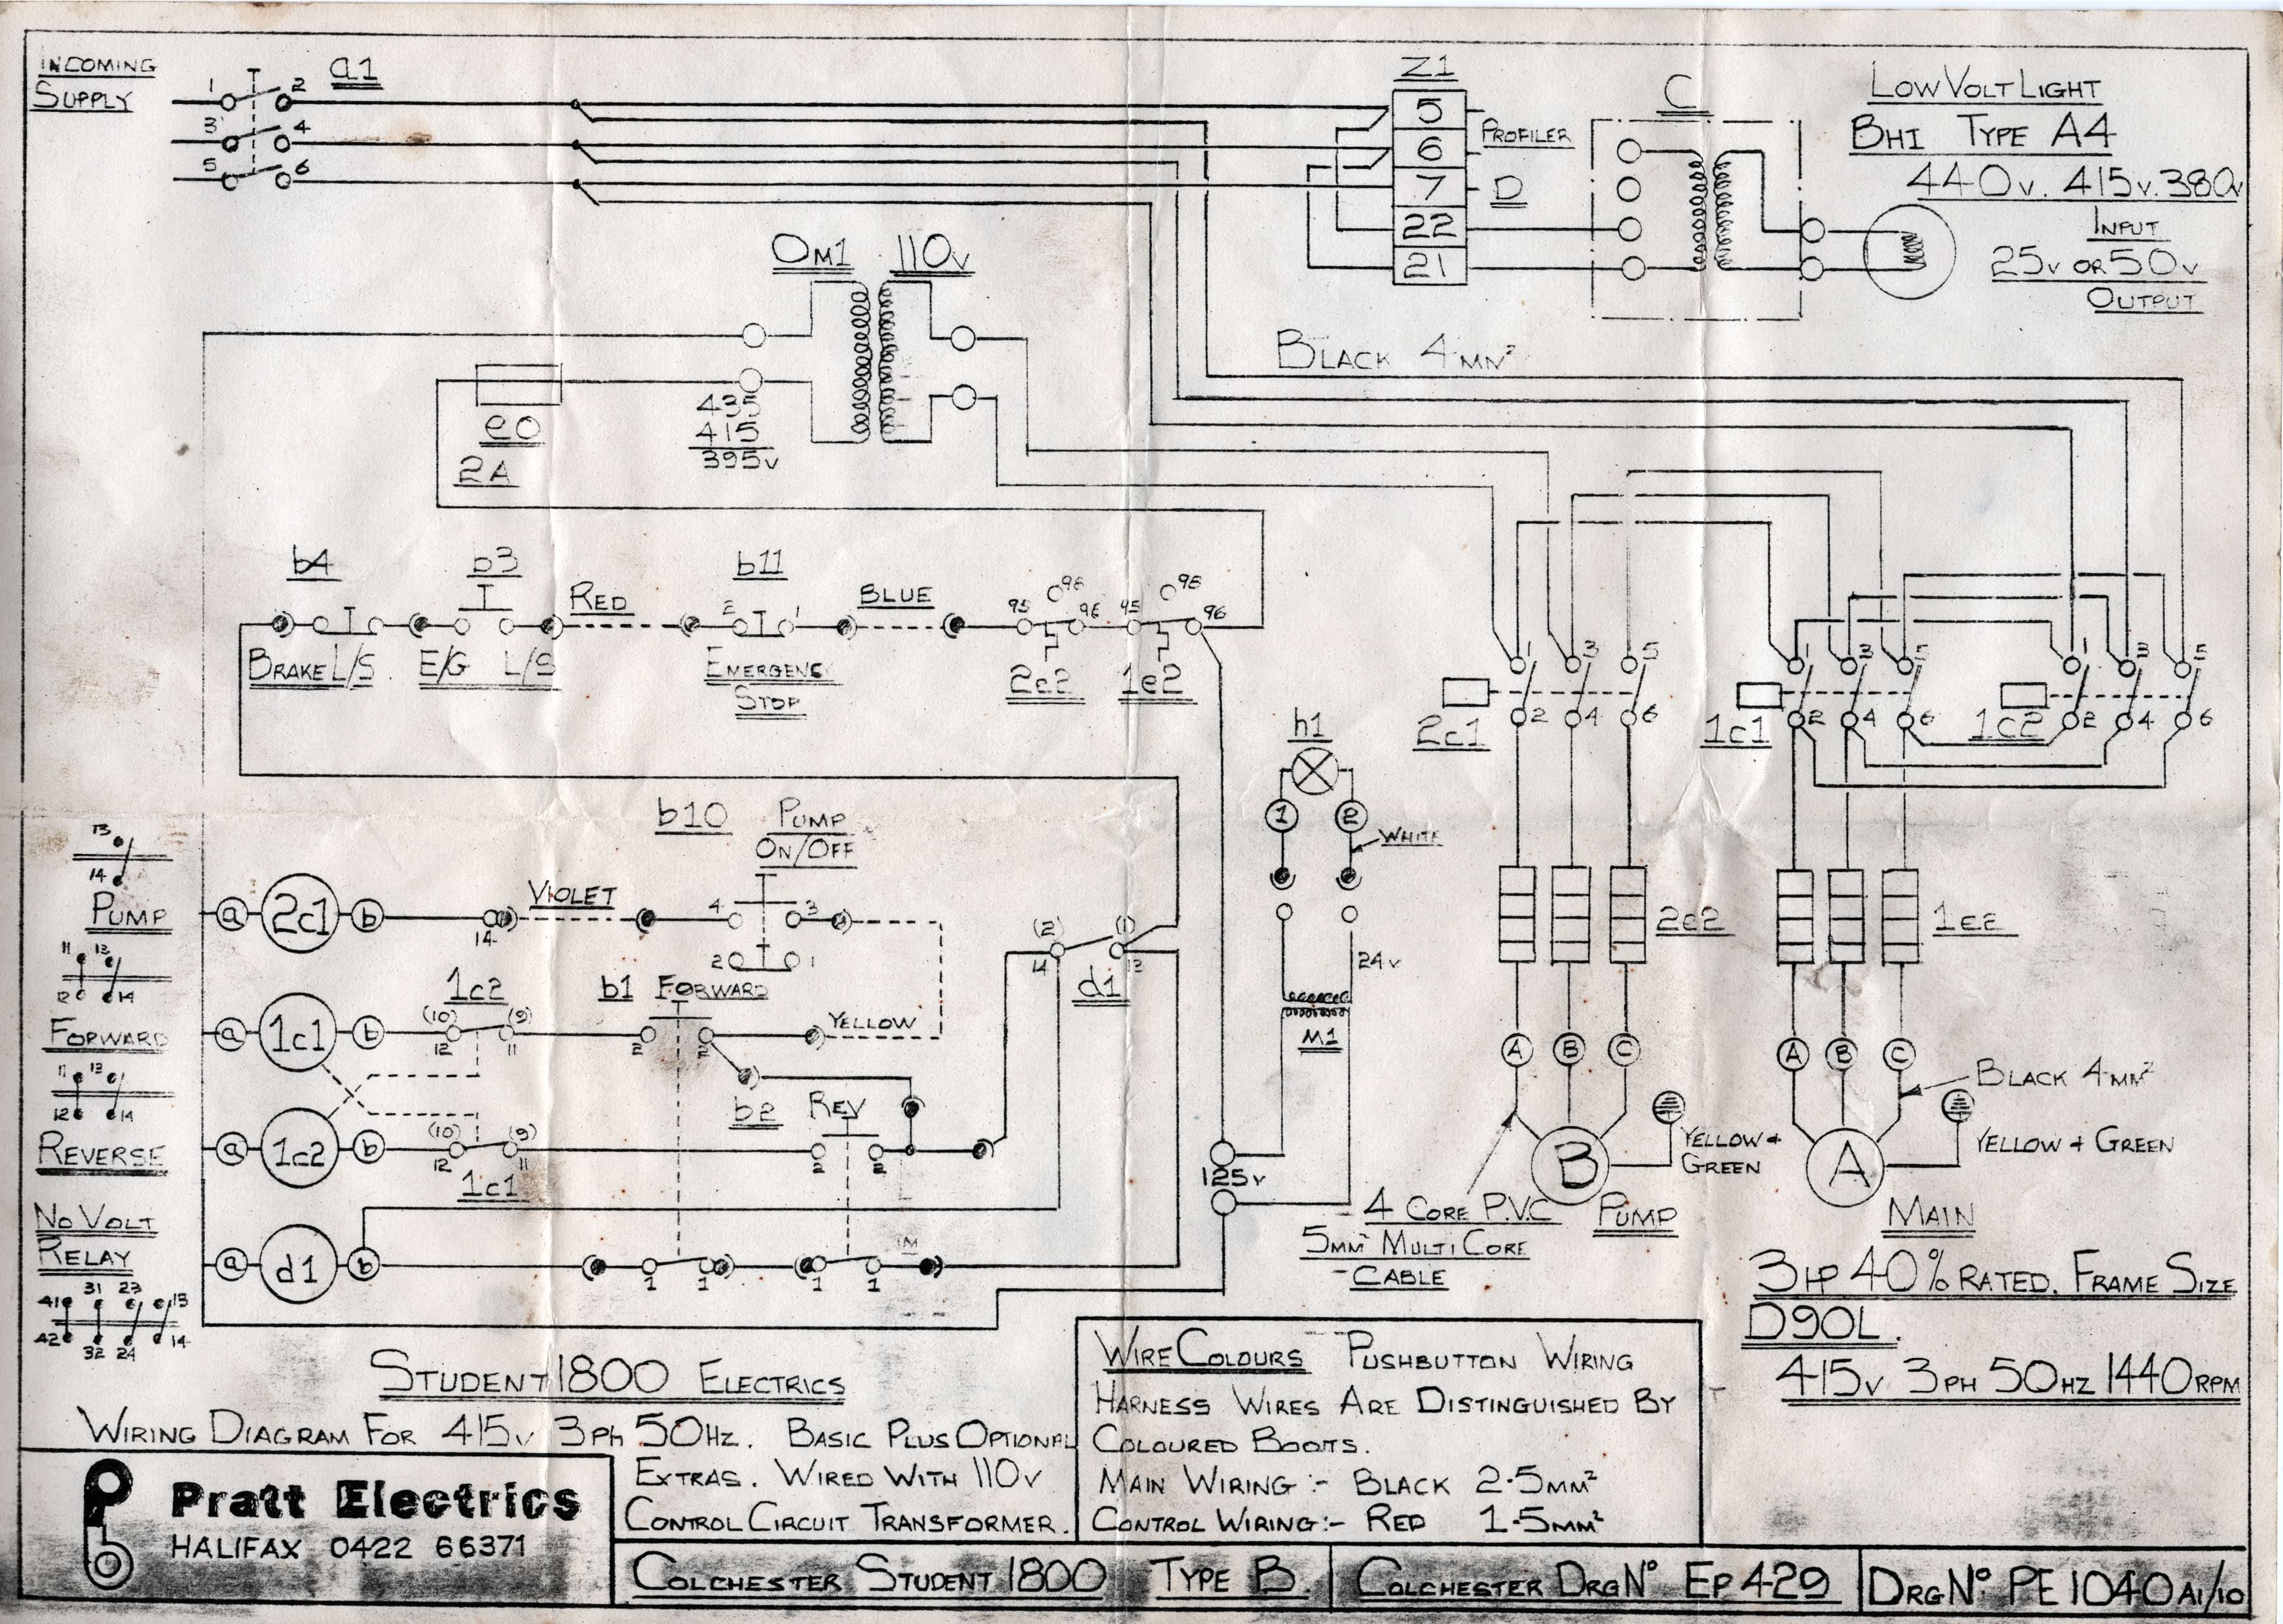 [SCHEMATICS_4US]  2080 Hercules Lathe Wiring Schematic. takisawa tsl d lathe operations and wiring  diagrams. running a regal lathe operation part manual leblond. leblond 25  32 plain heavy gap bed hollow lathes. mazak wiring | 2080 Hercules Lathe Wiring Schematic |  | 2002-acura-tl-radio.info